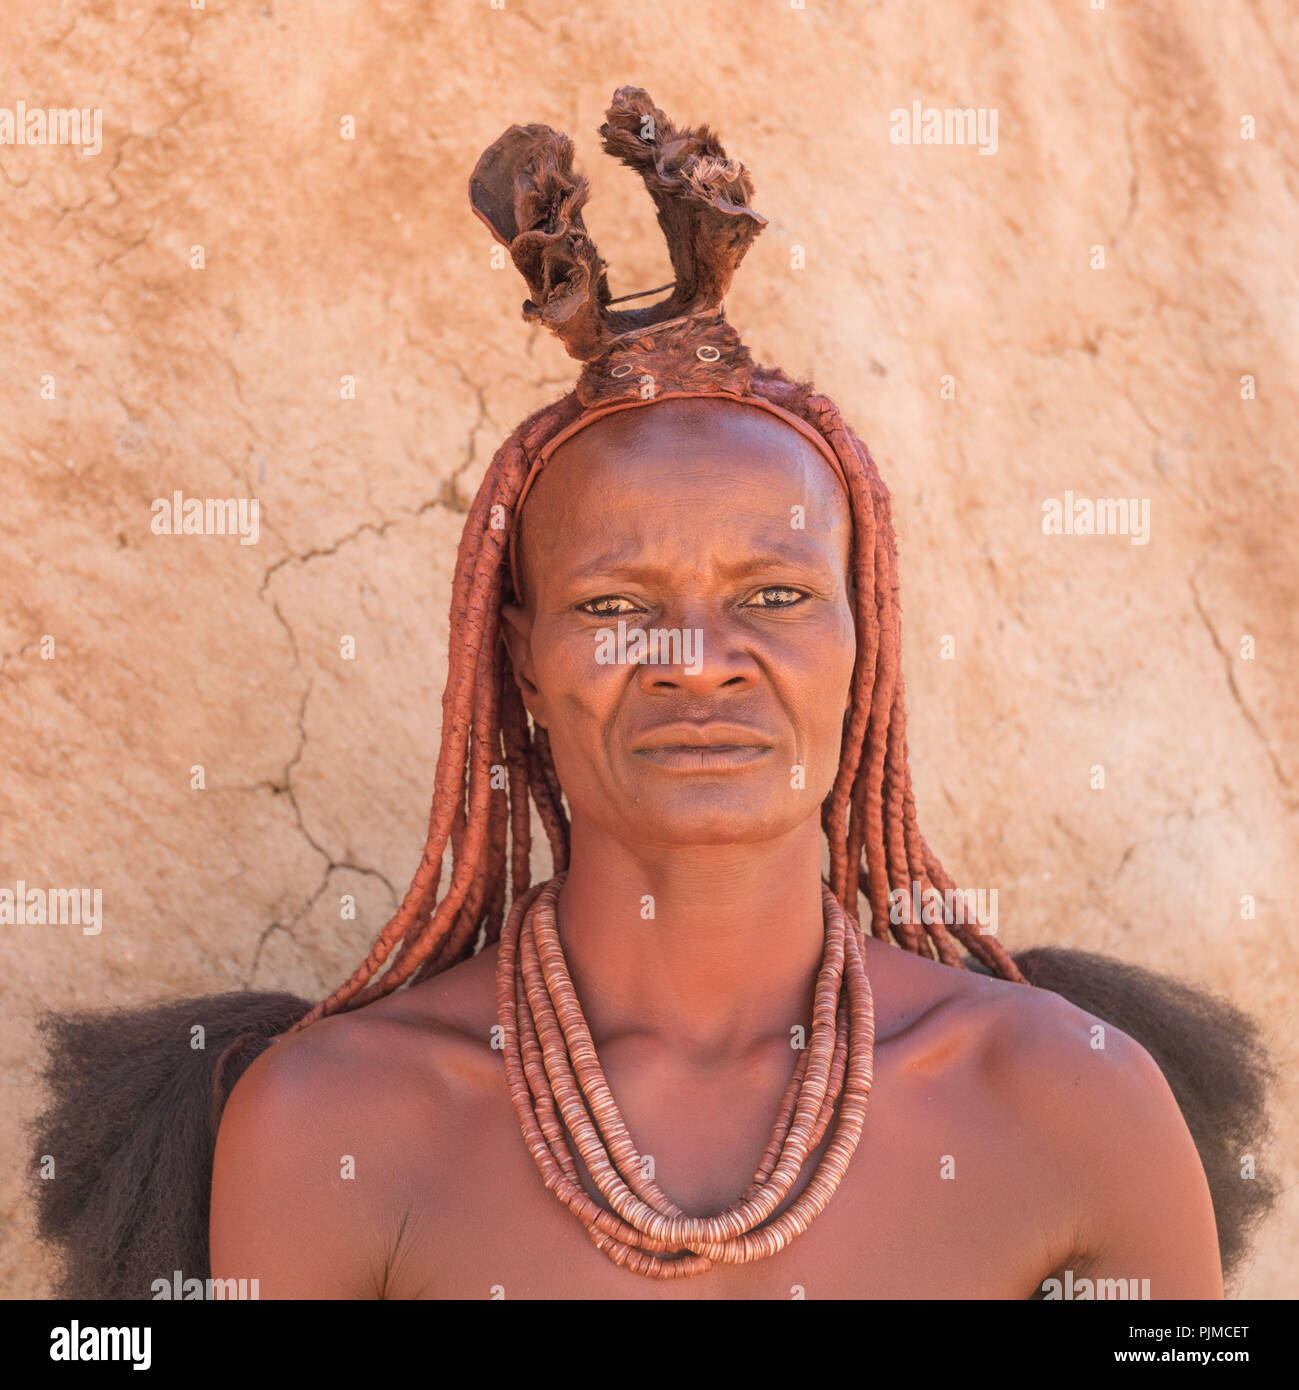 Portrait of a Himba woman with traditional headgear, looking into the camera - Stock Image